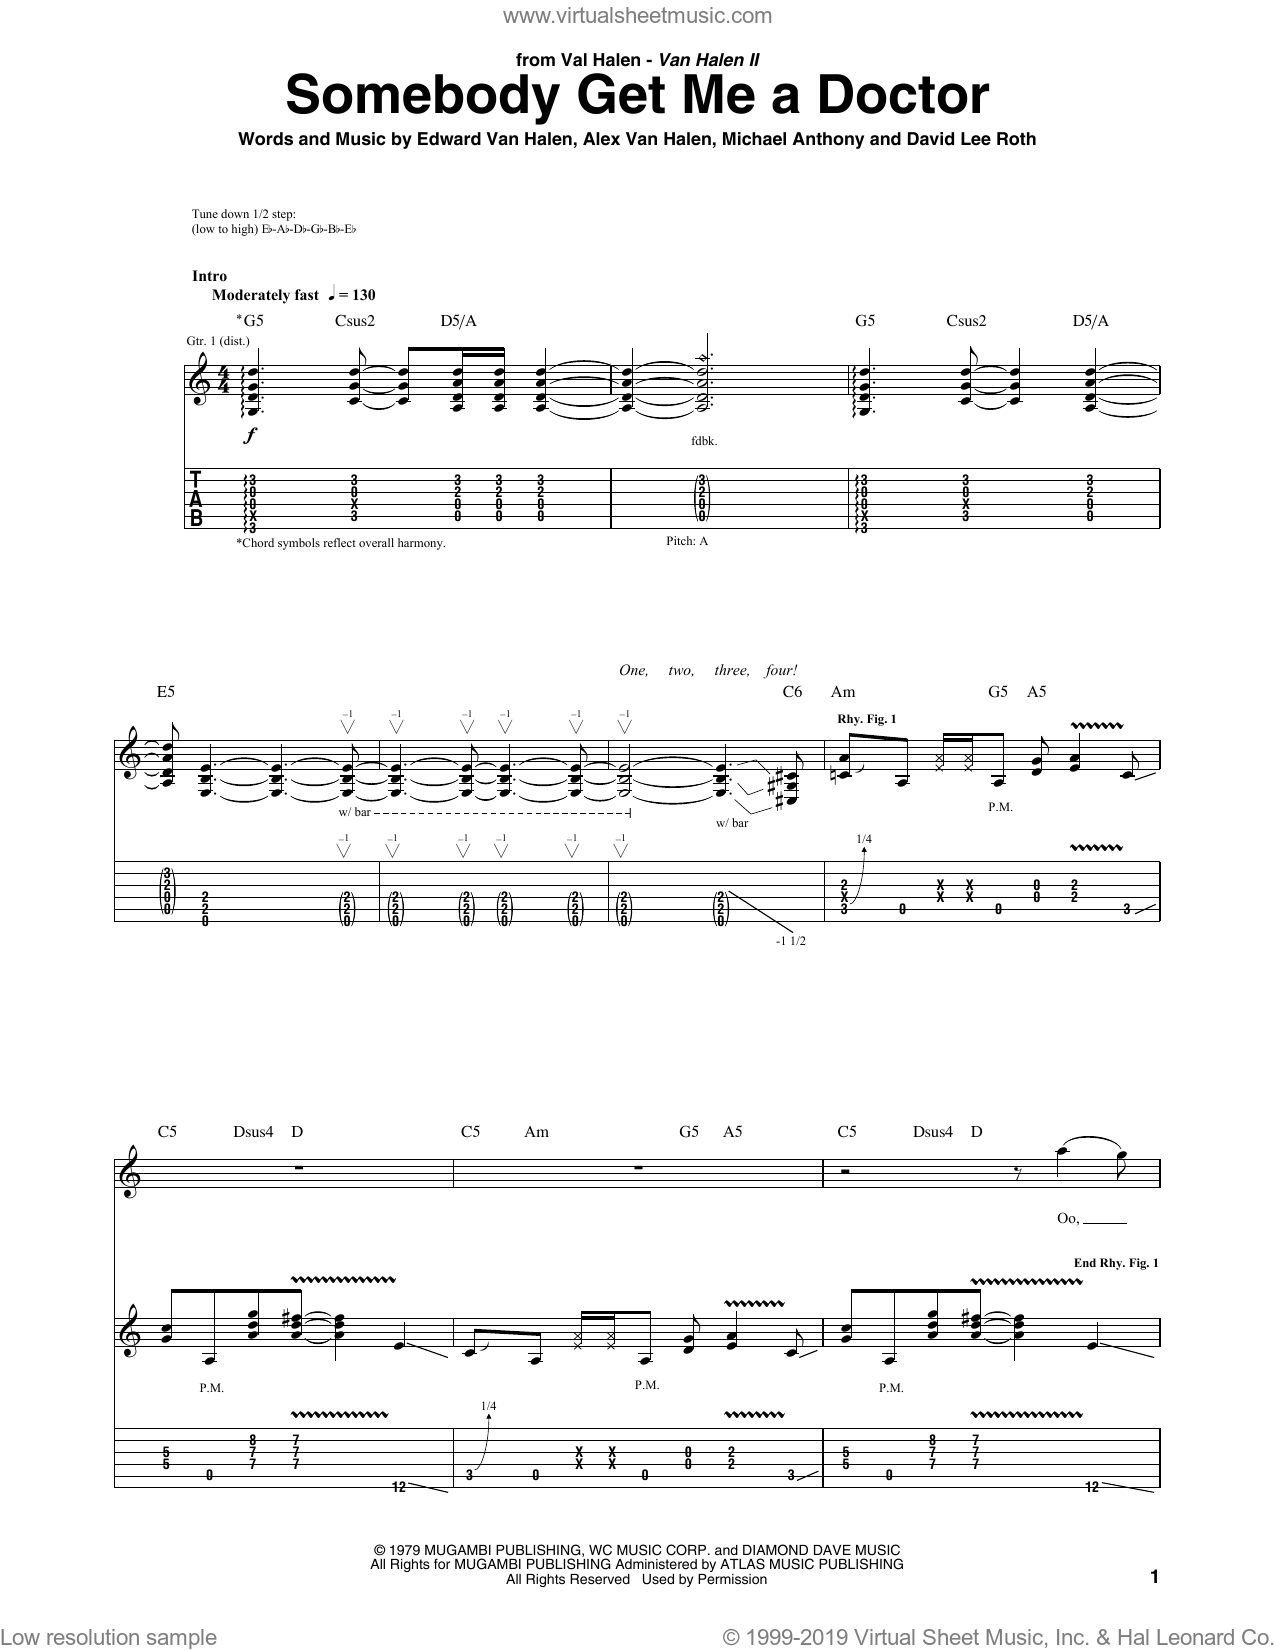 Somebody Get Me A Doctor sheet music for guitar (tablature) by Michael Anthony, Alex Van Halen, David Lee Roth and Edward Van Halen. Score Image Preview.